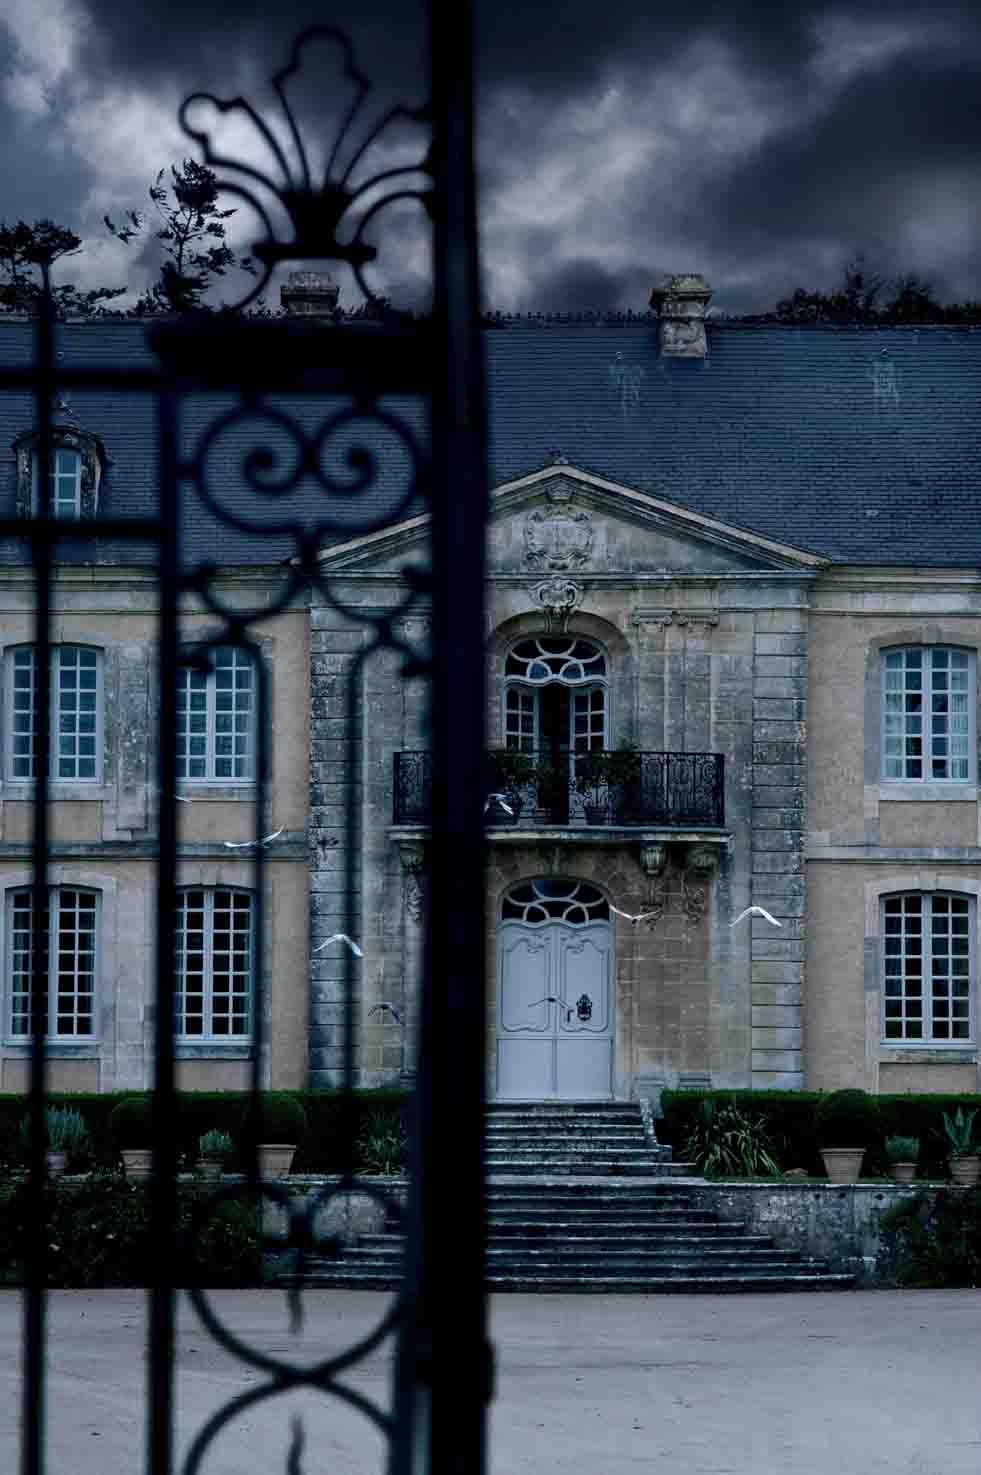 A French Photographer's Dream World: The Normandy of writer Jules Amedee Barbey d'Aurevilly. Images from various Chateau's & locations in Normandy by Paris-based photographer Vincent Thibert. -- the style saloniste